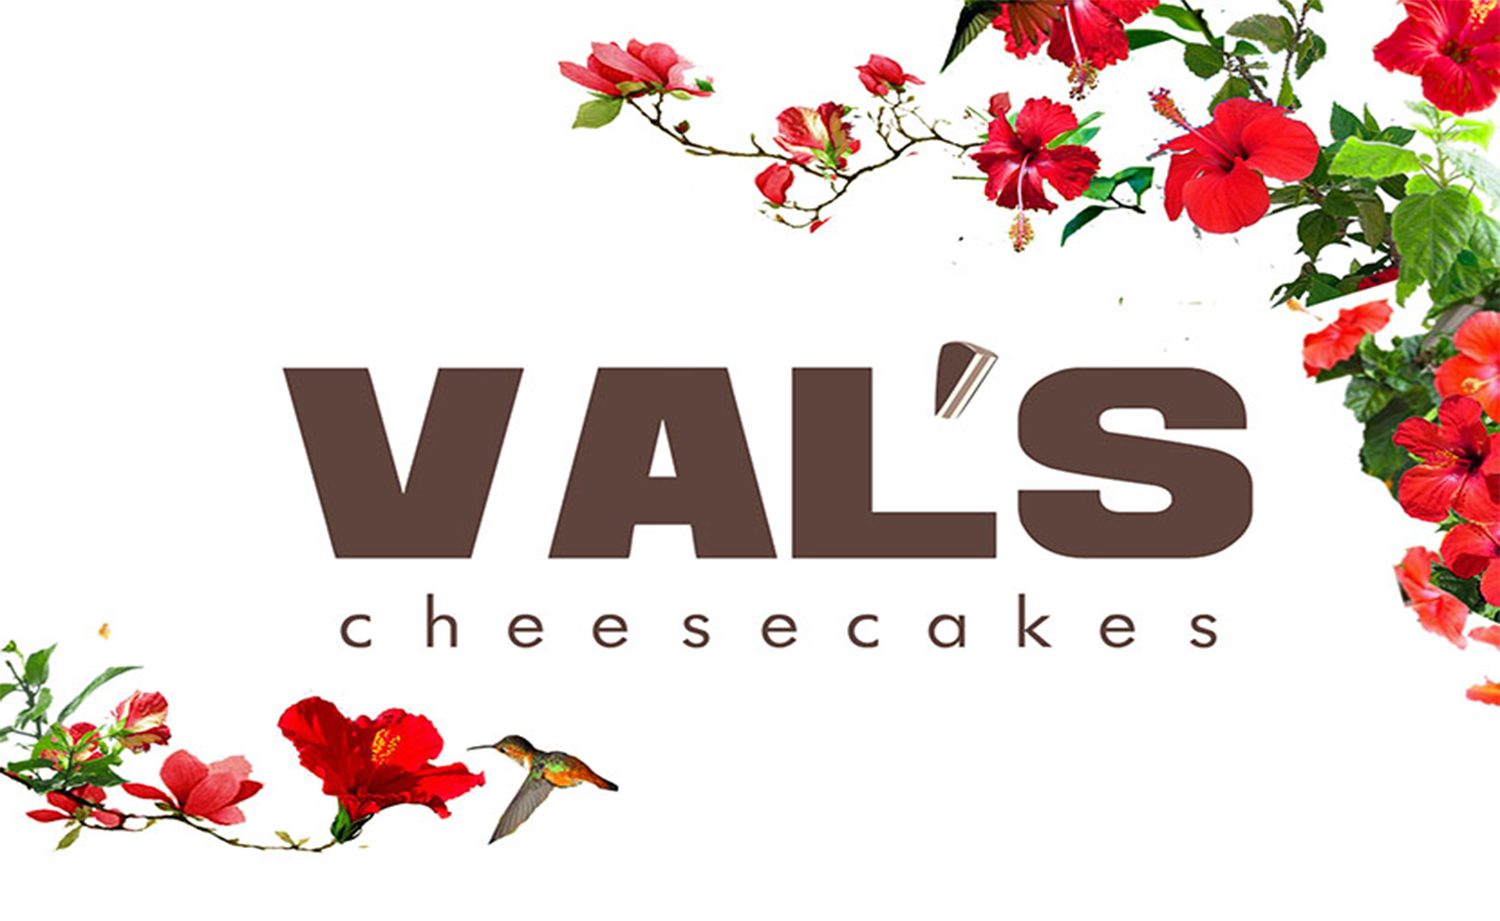 Val's Cheesecakes